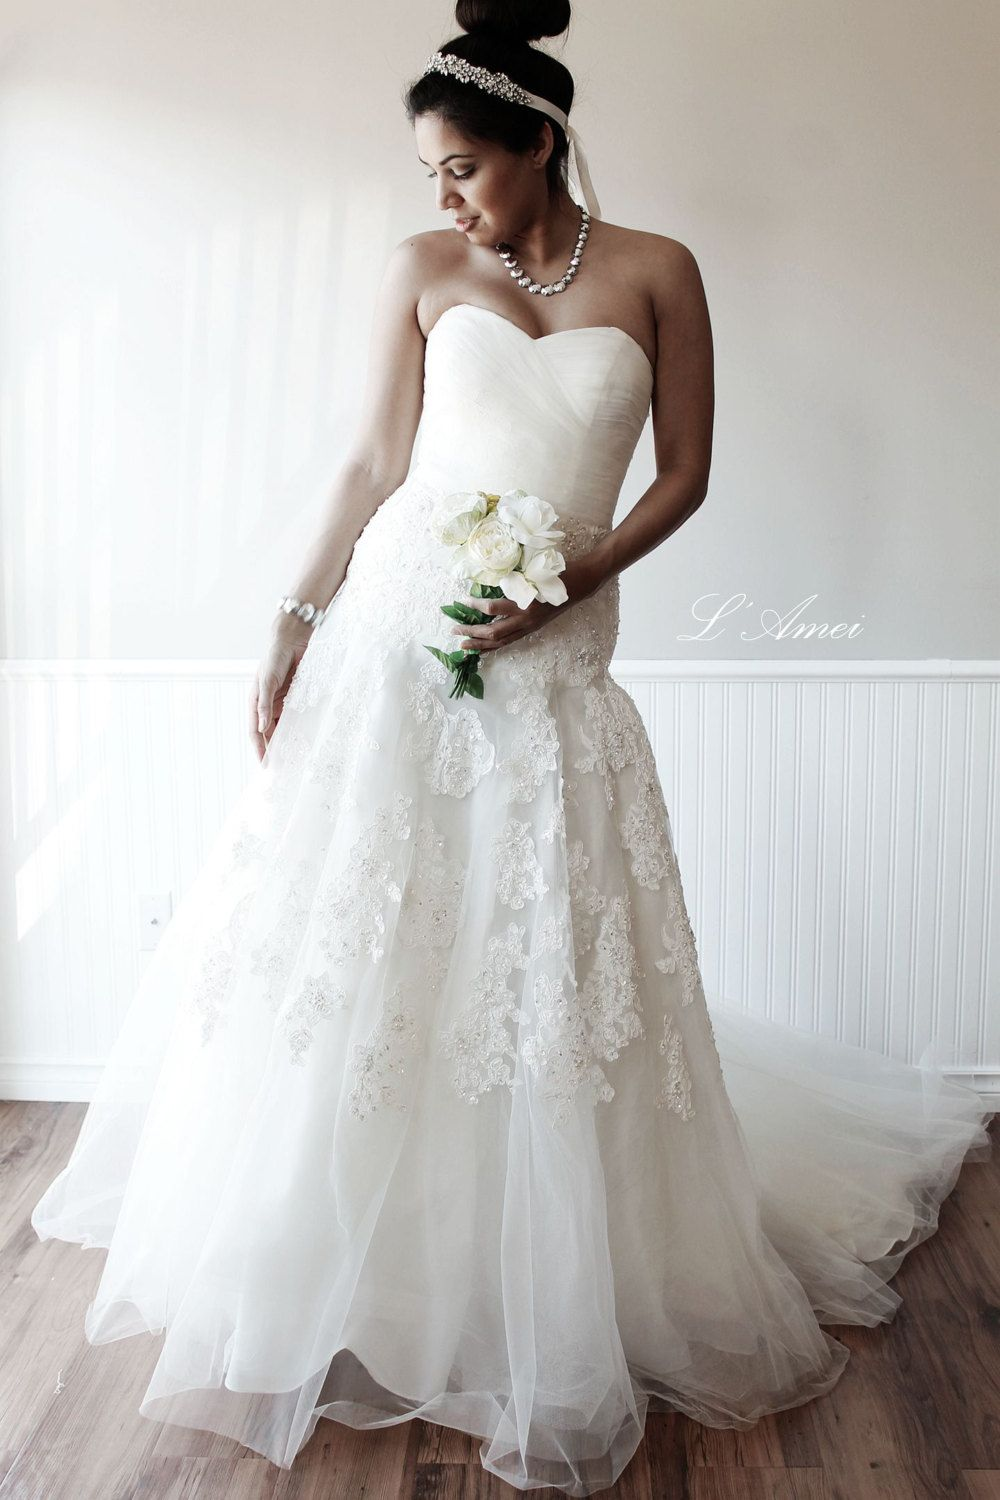 Blinged out wedding dress  Custom Made Classical French Lace Tulle Wedding Dress by LAmei